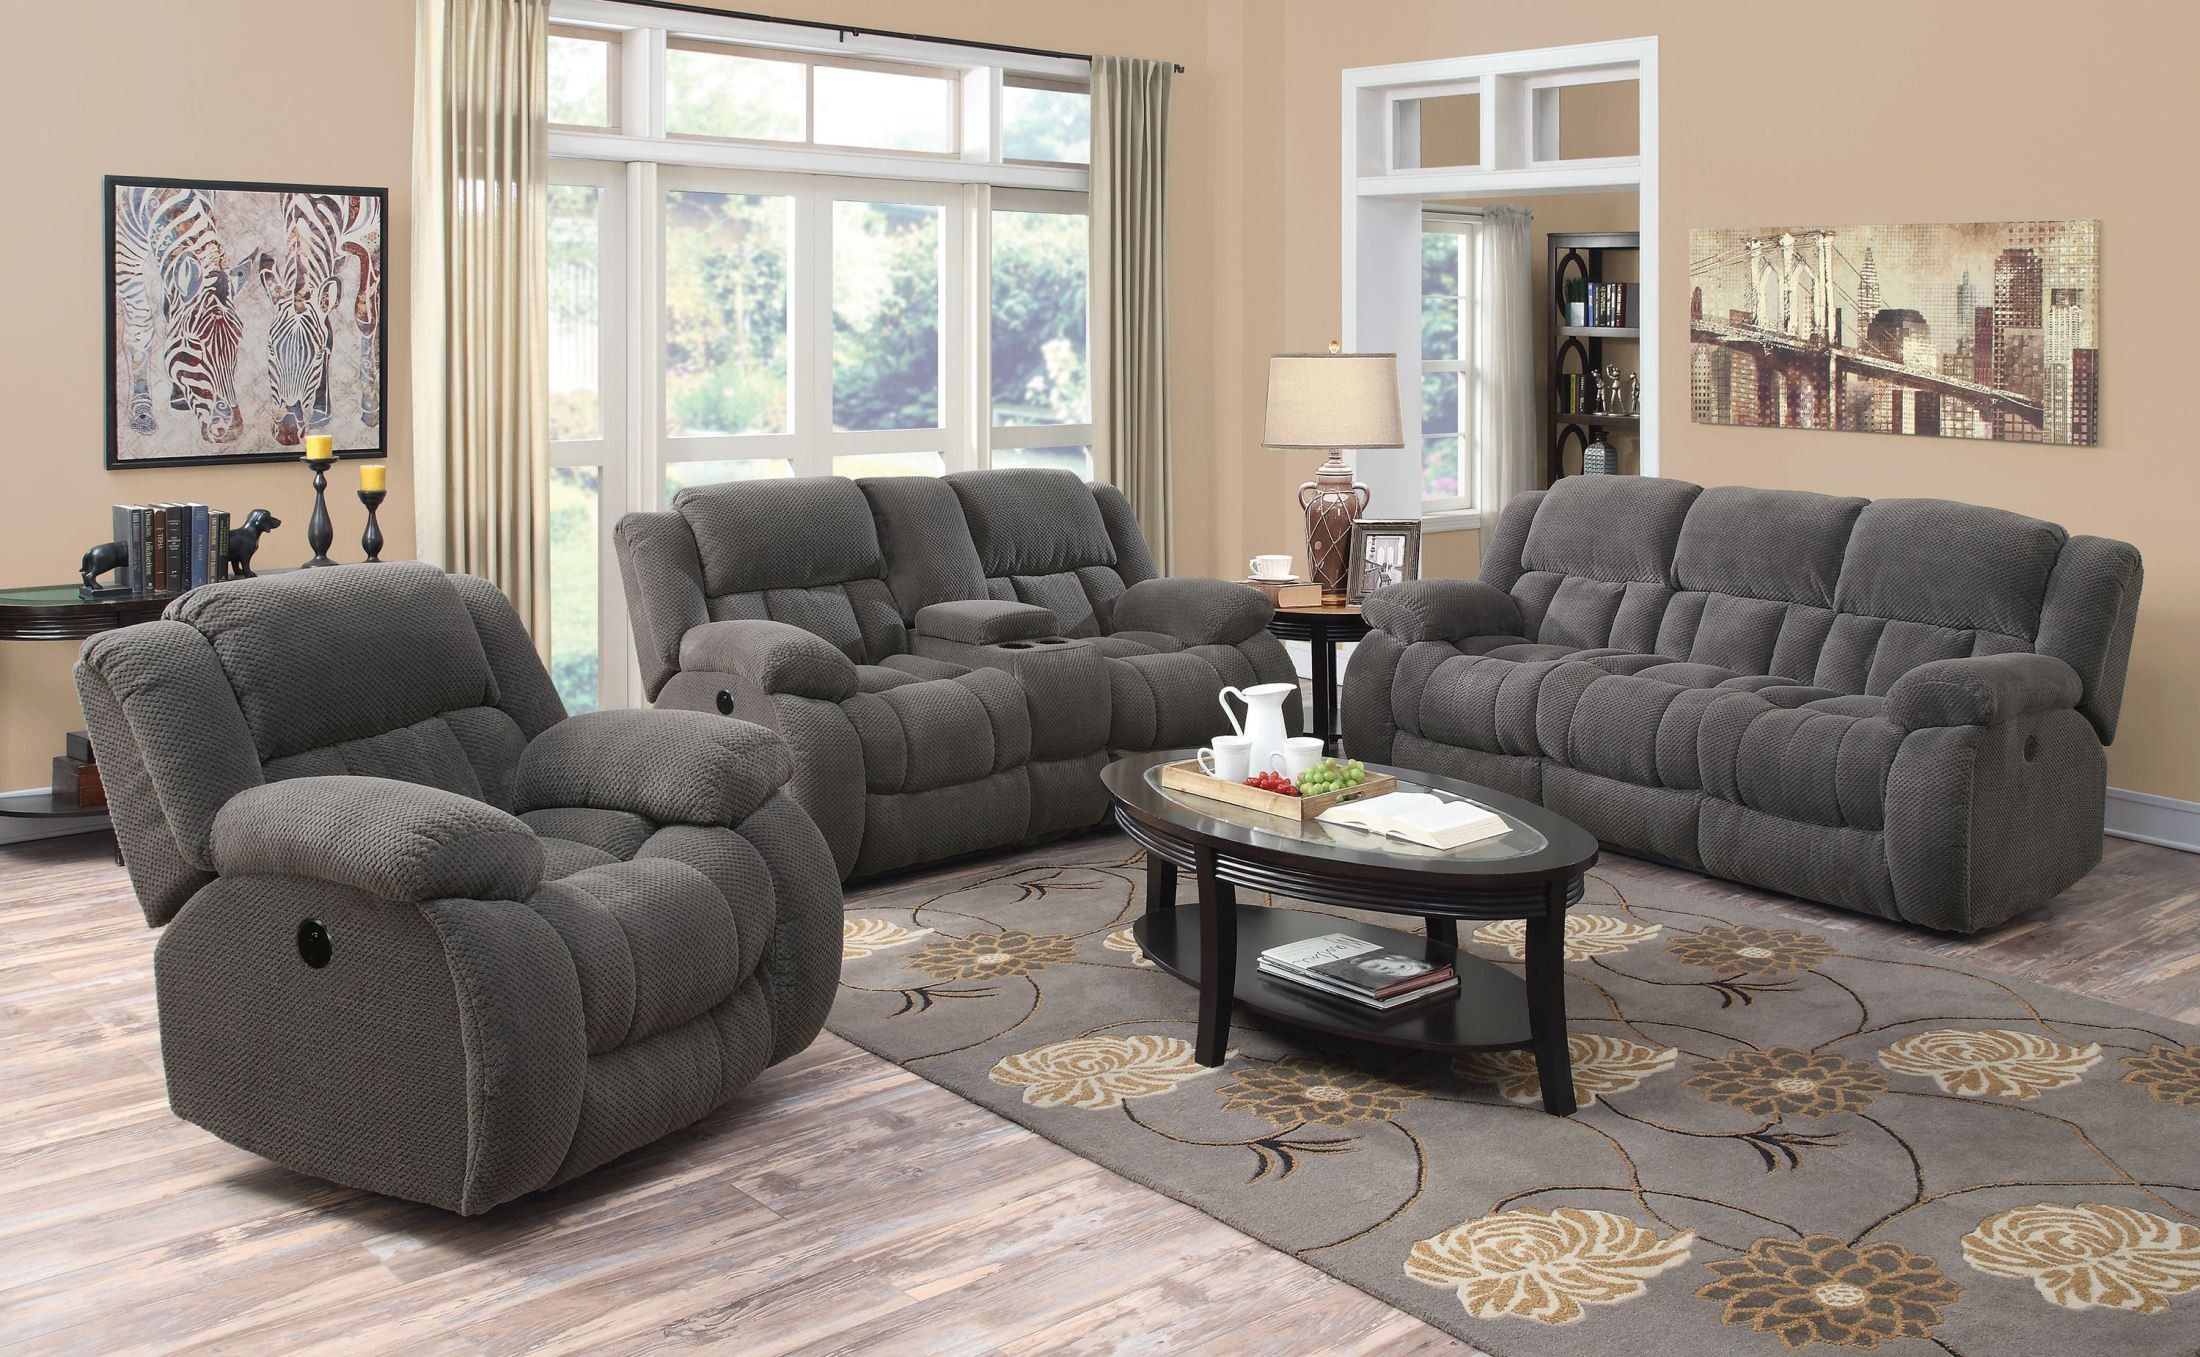 Weissman Charcoal Reclining Living Room Set from Coaster (601921 ...